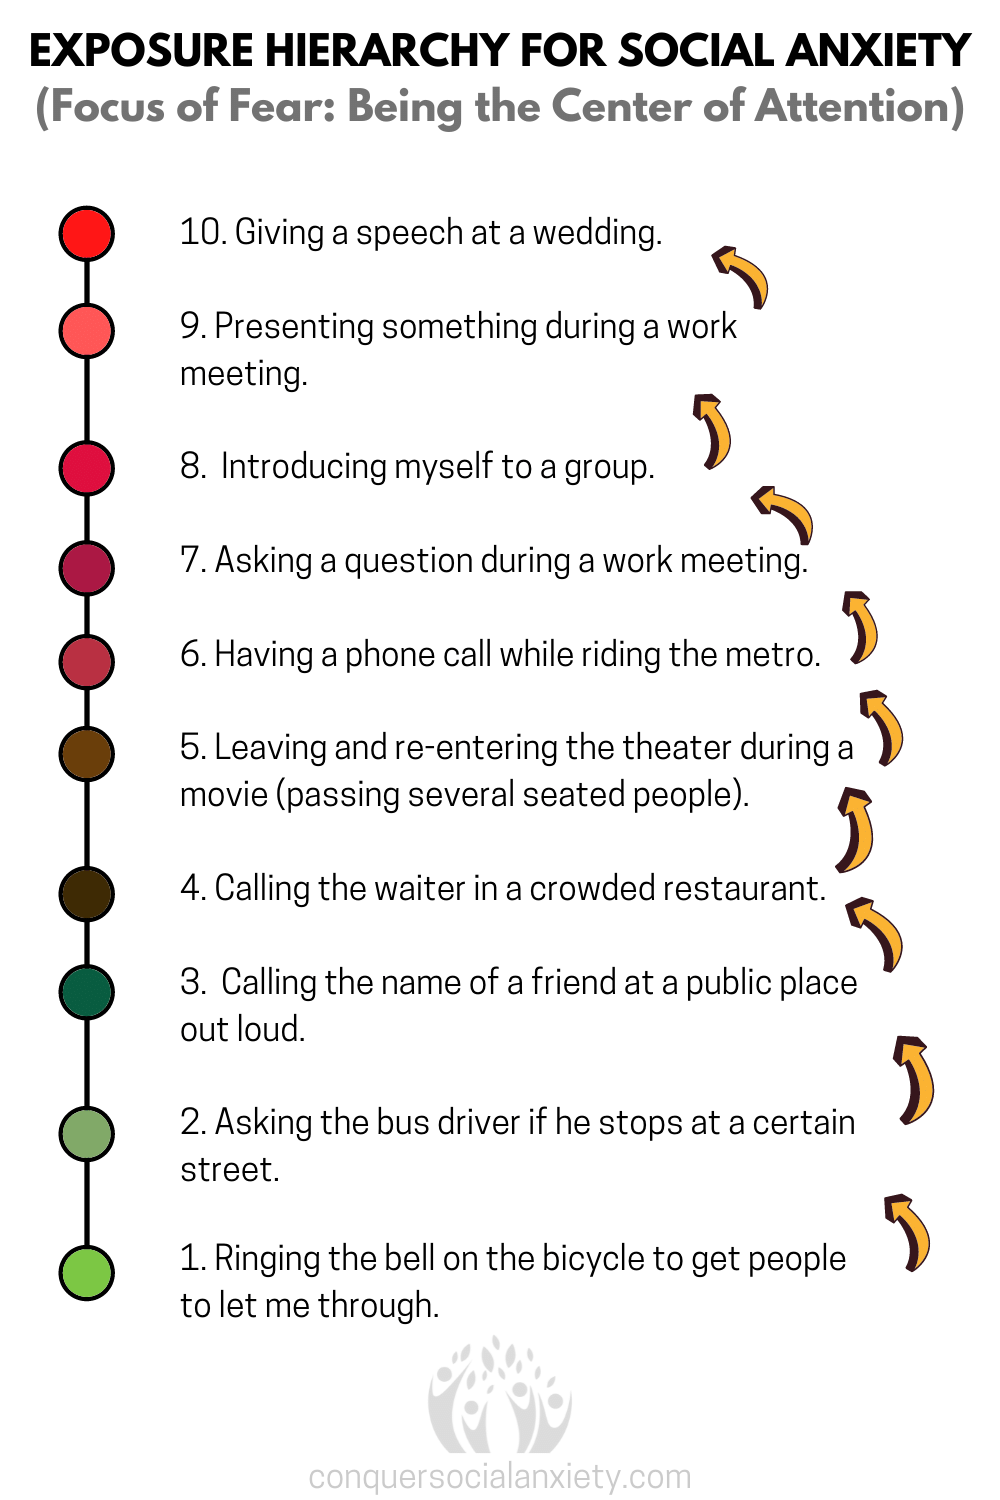 CBT exposure hierarchy (fear ladder) of a person with social anxiety. Ten steps for exposure exercises to overcome the fear of being the center of attention.